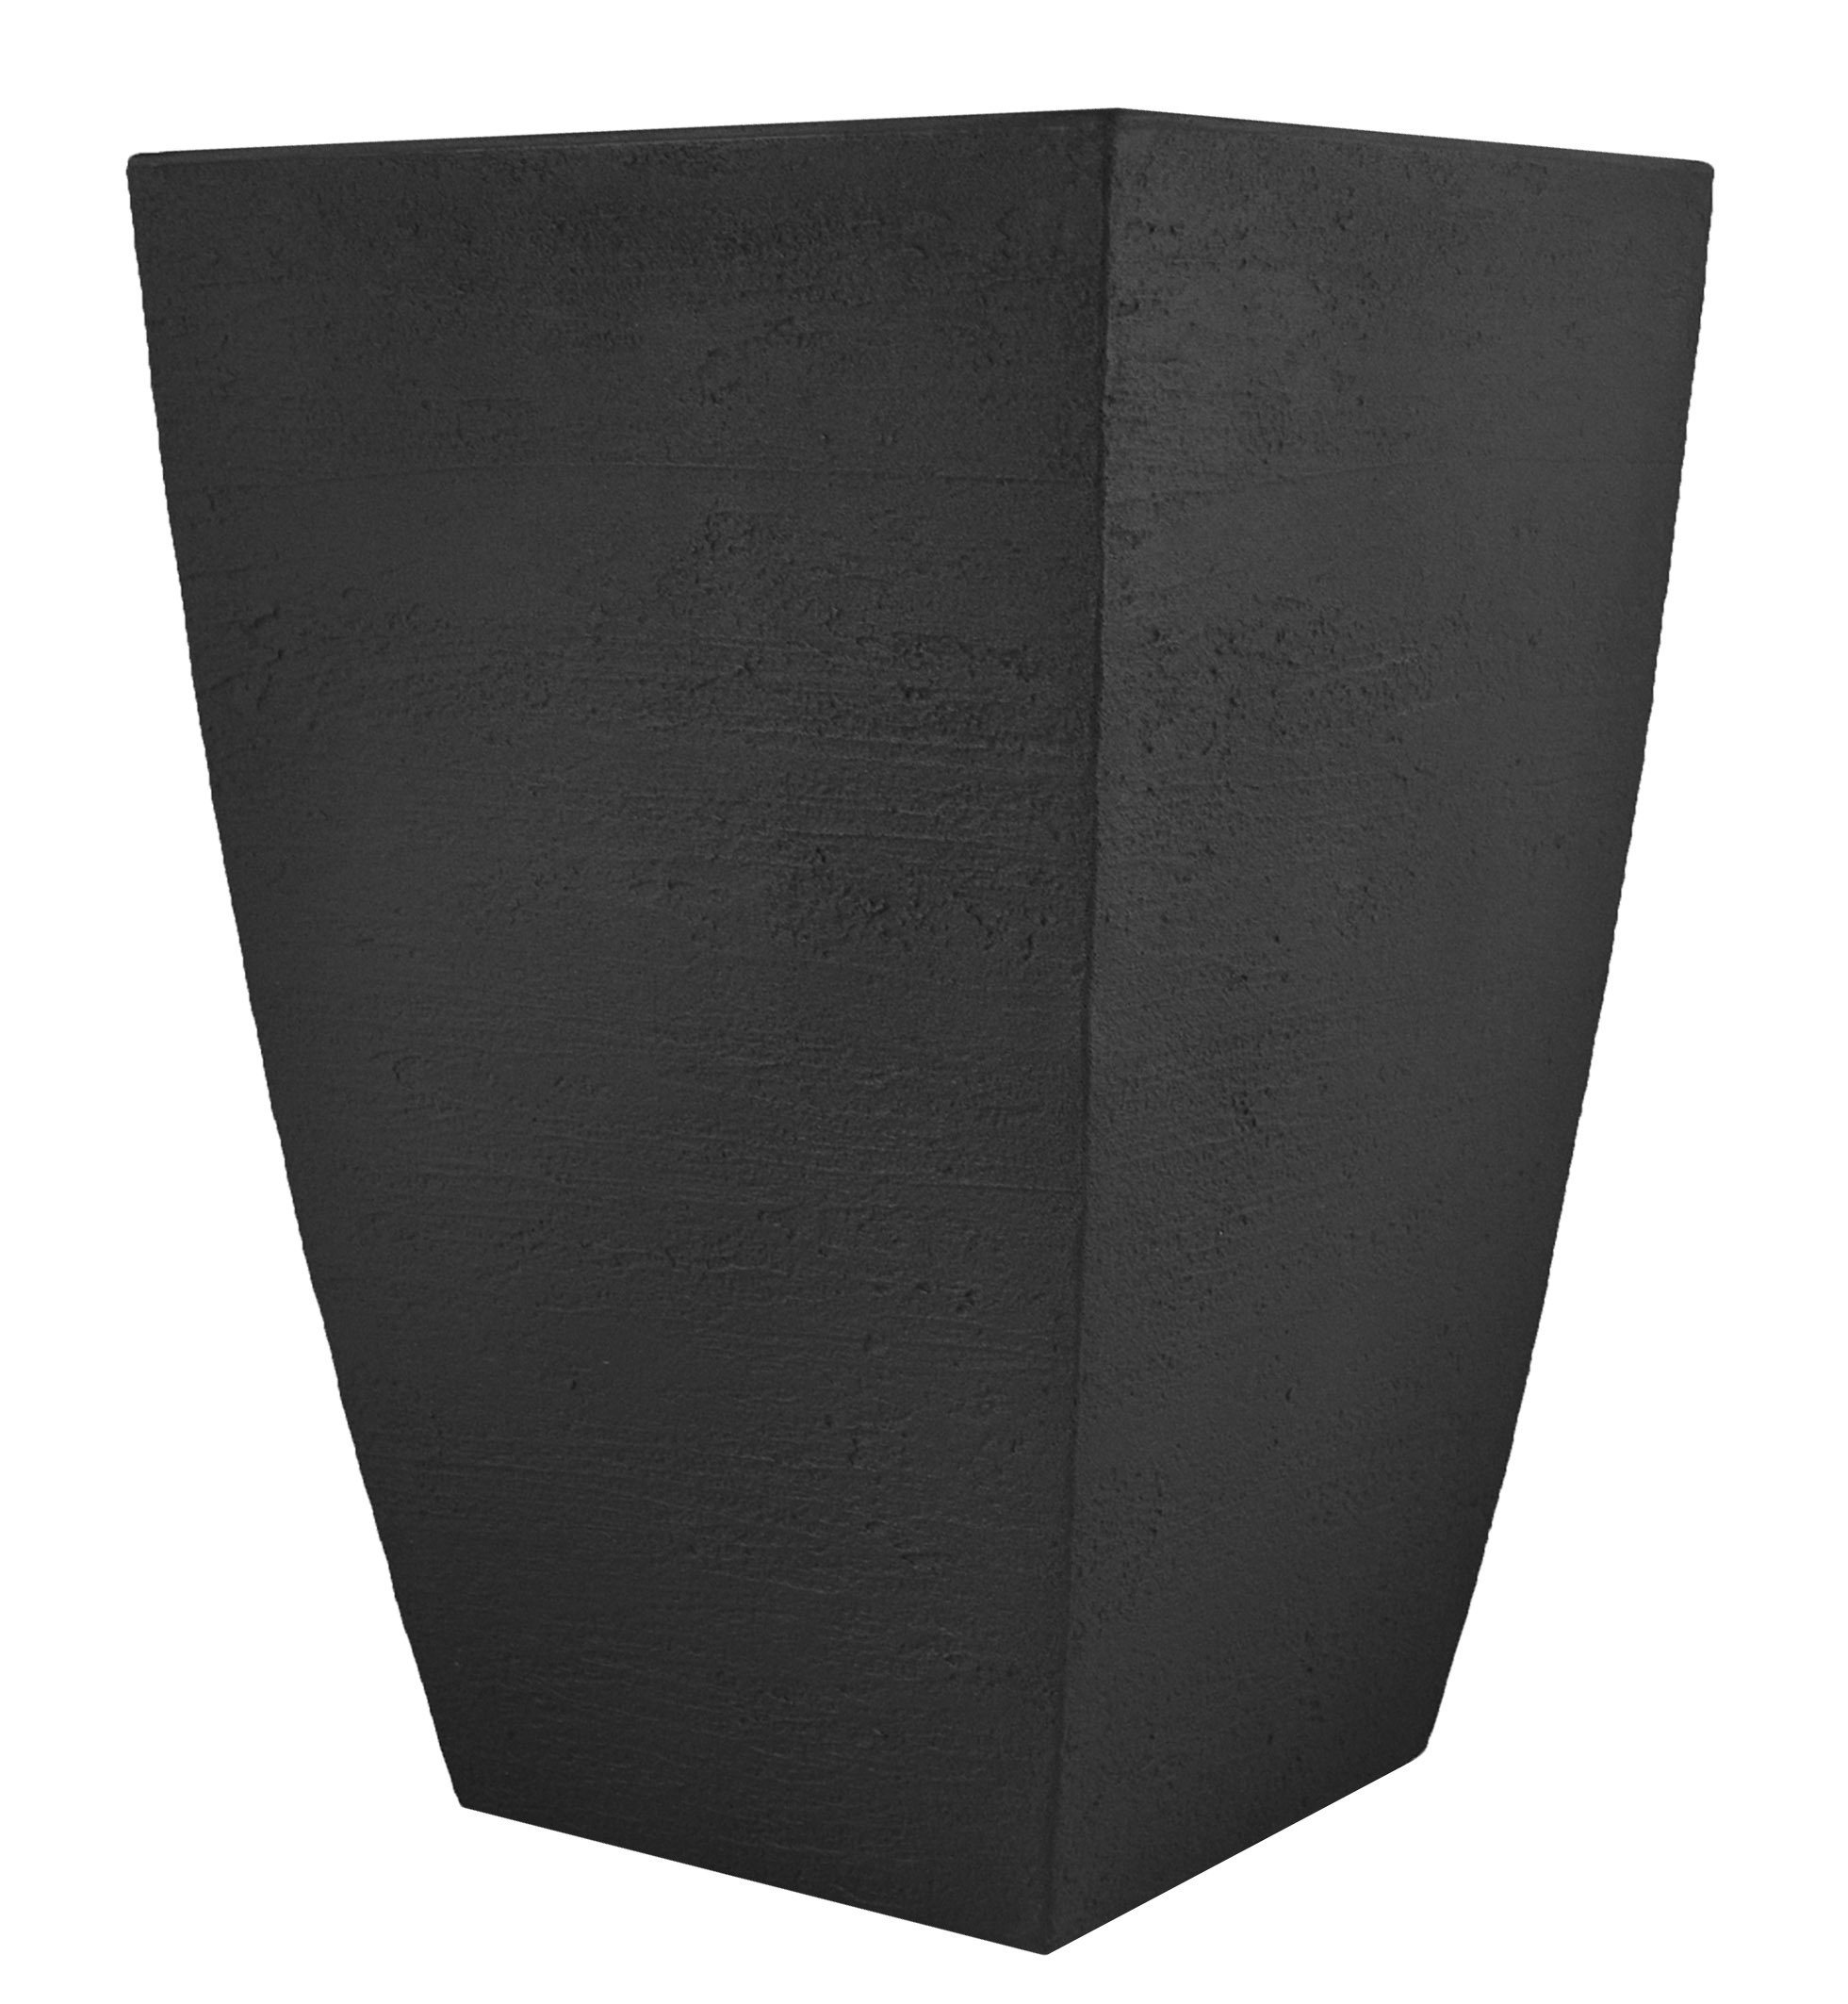 Tusco Products MSQT19BK Modern Square Garden Planter, 19-Inches Tall, Black by Tusco Products